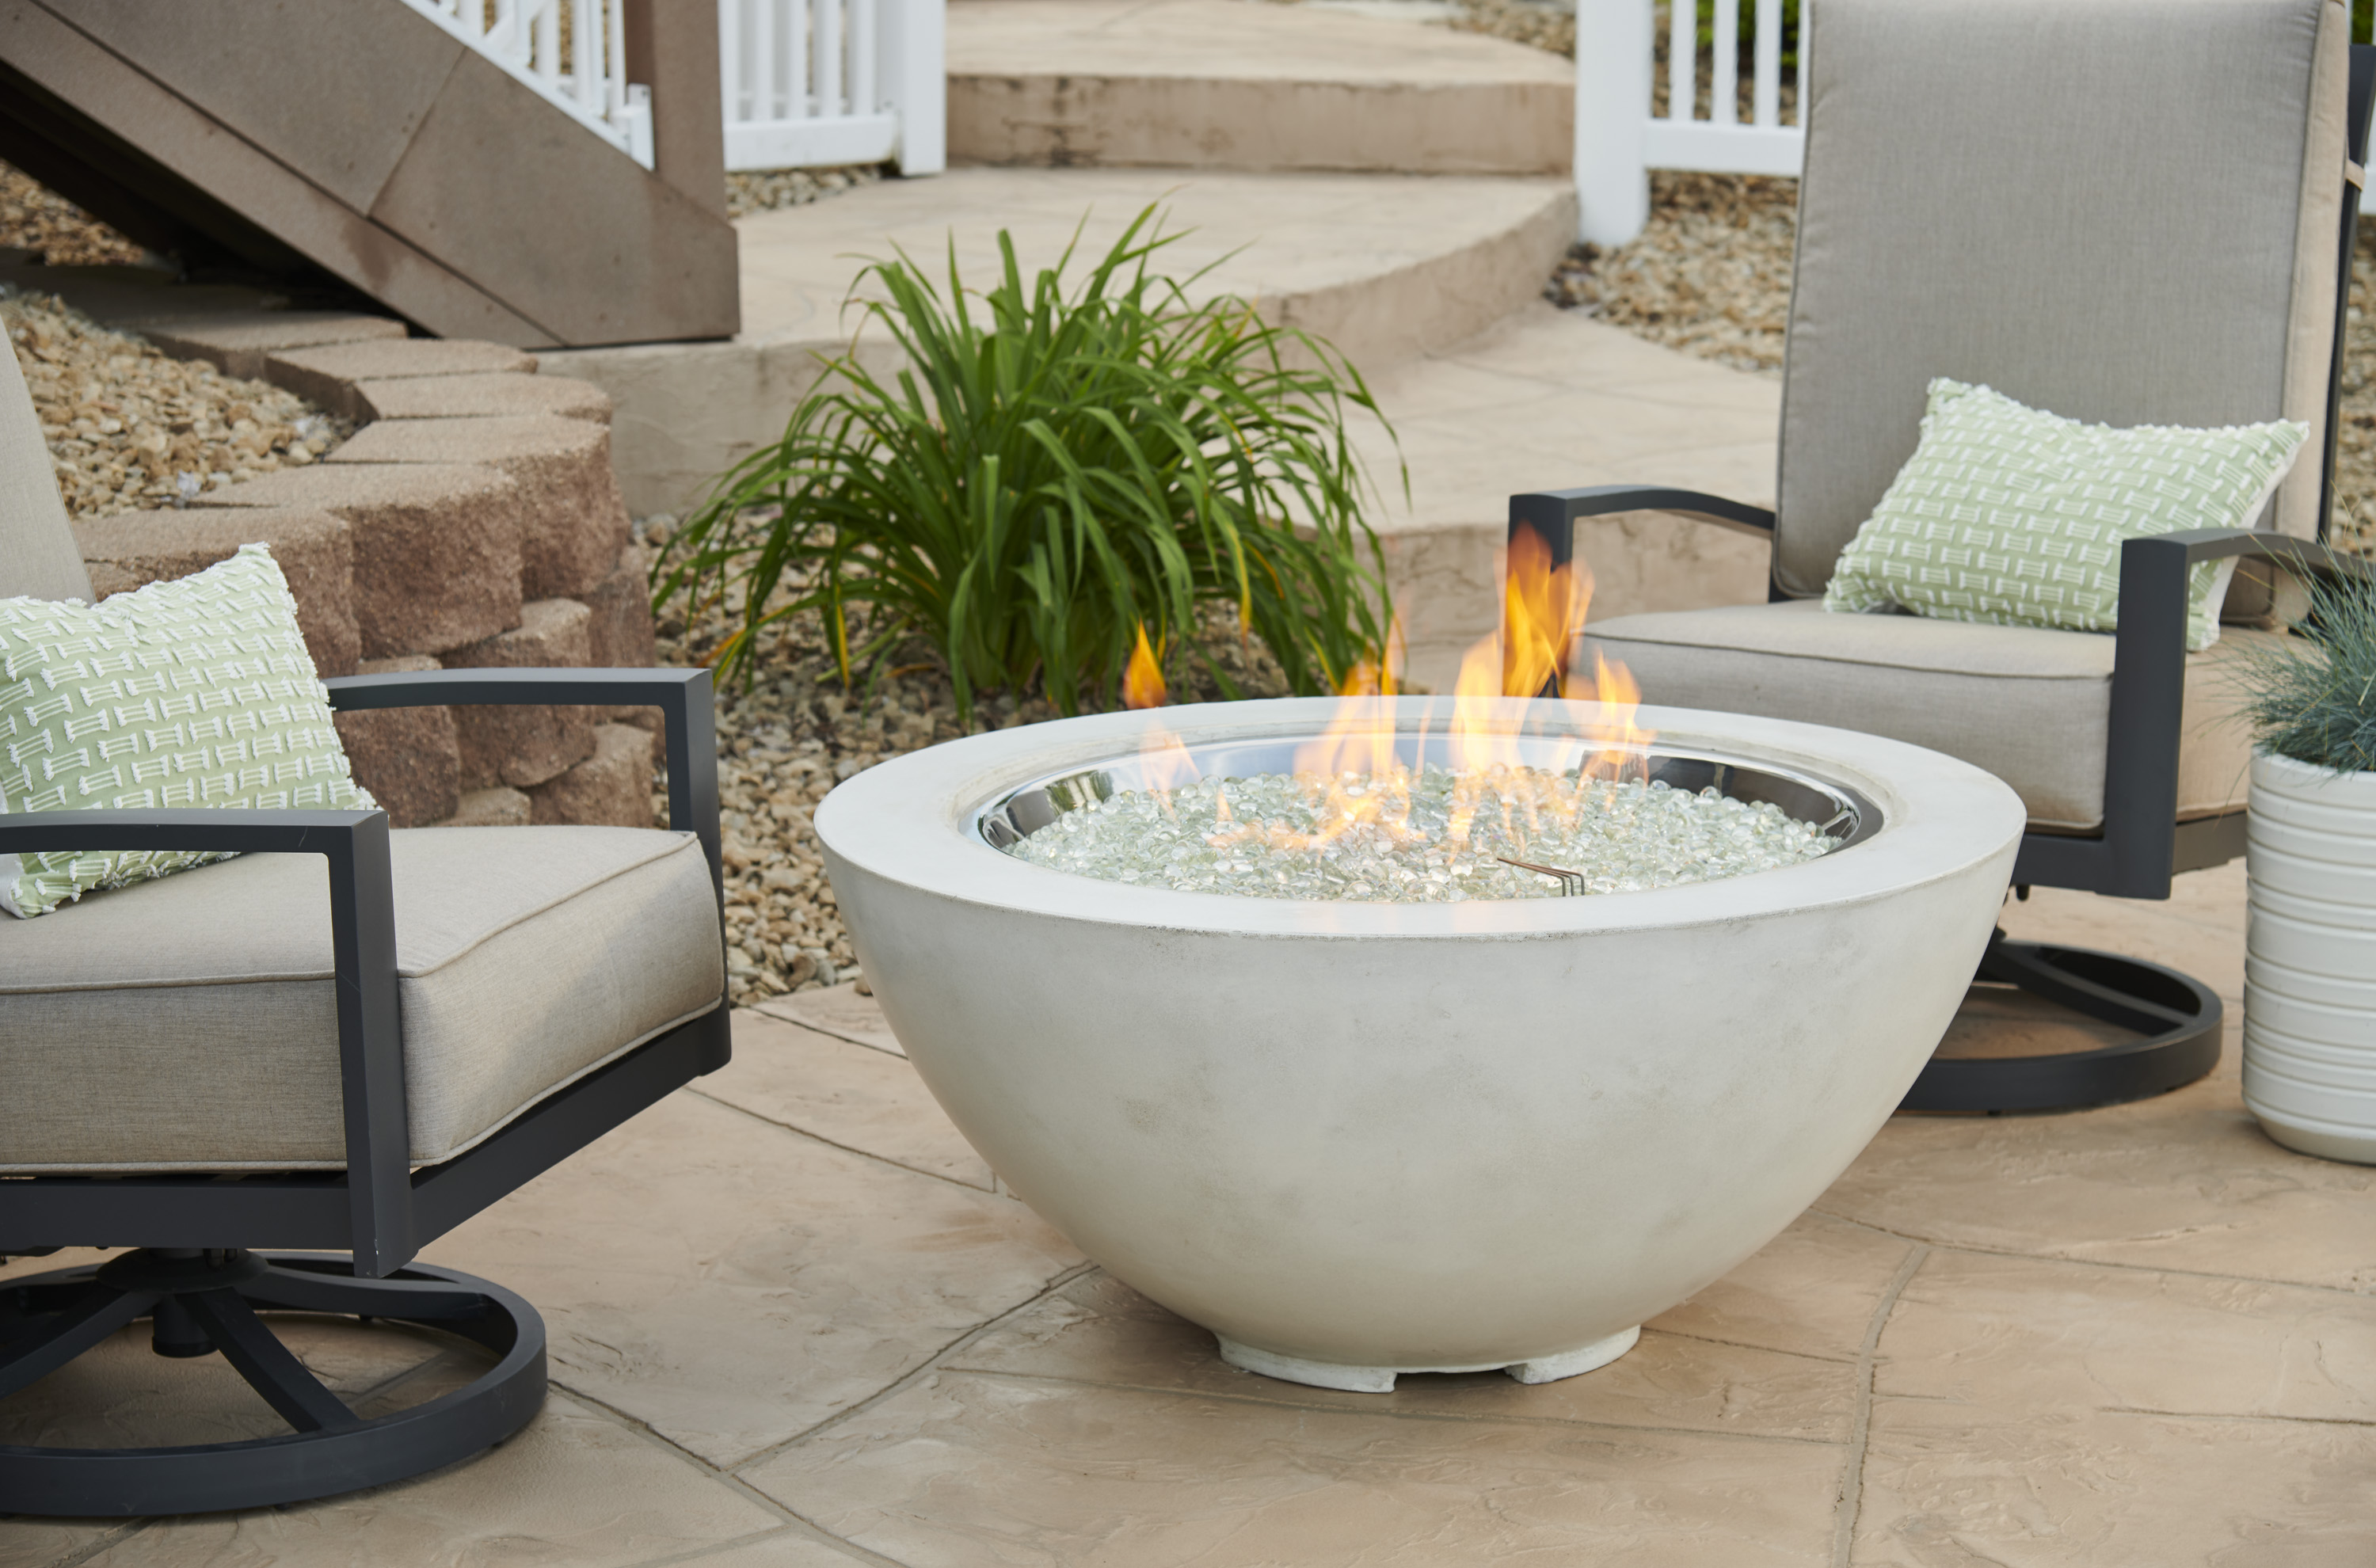 White Cove 30 Quot Gas Fire Pit Bowl By Outdoor Greatroom